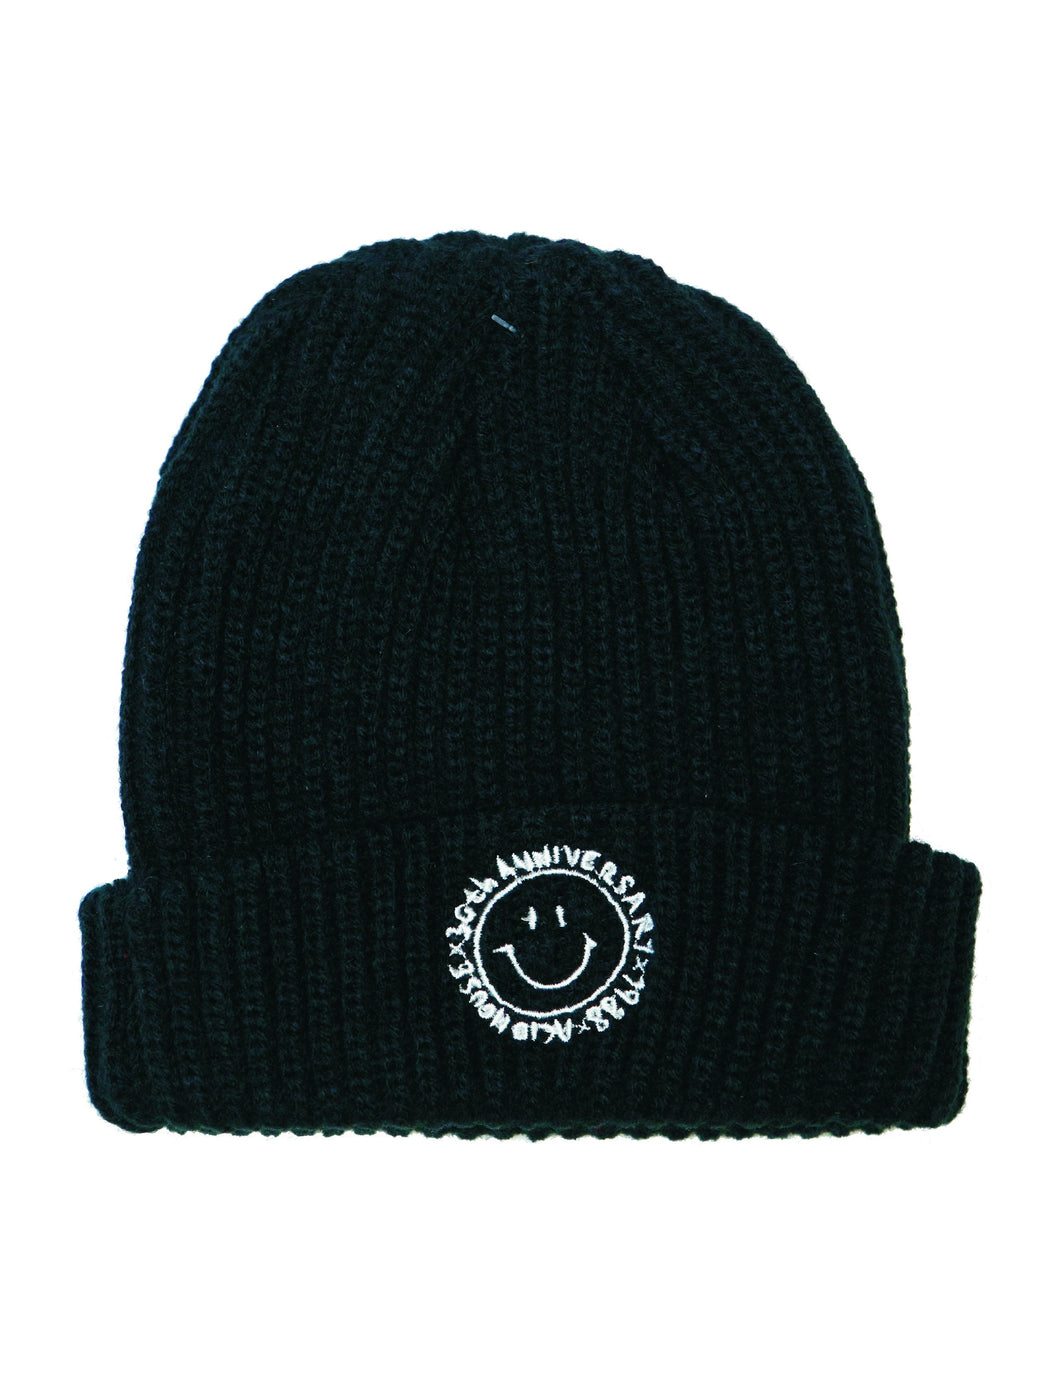 James Enox  1988 Beanie Black